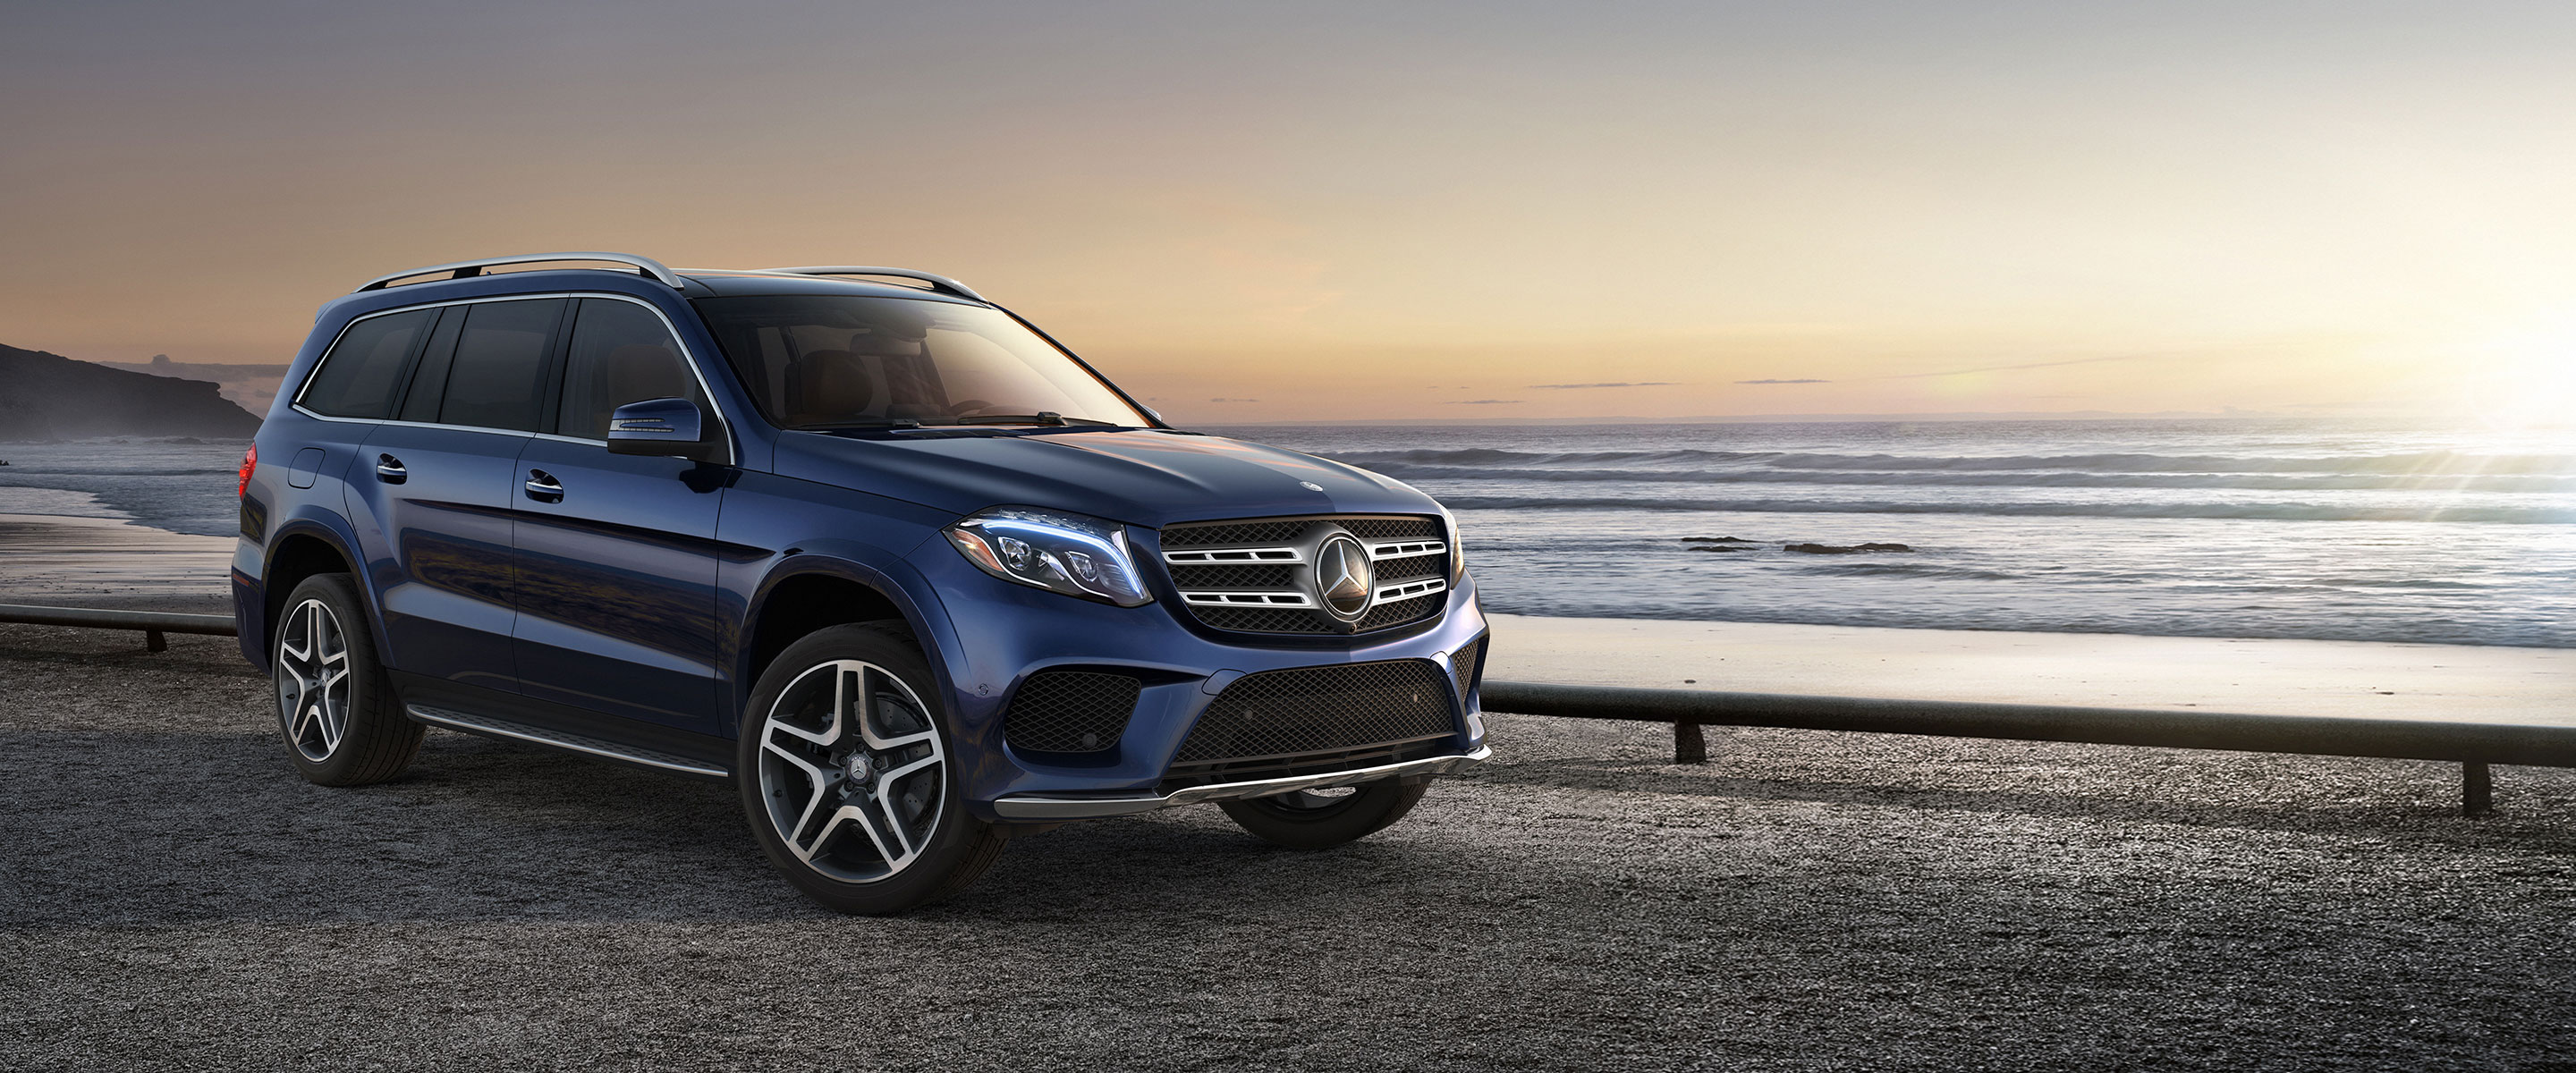 Mercedes benz gls price lease ann arbor mi for Mercedes benz gl lease